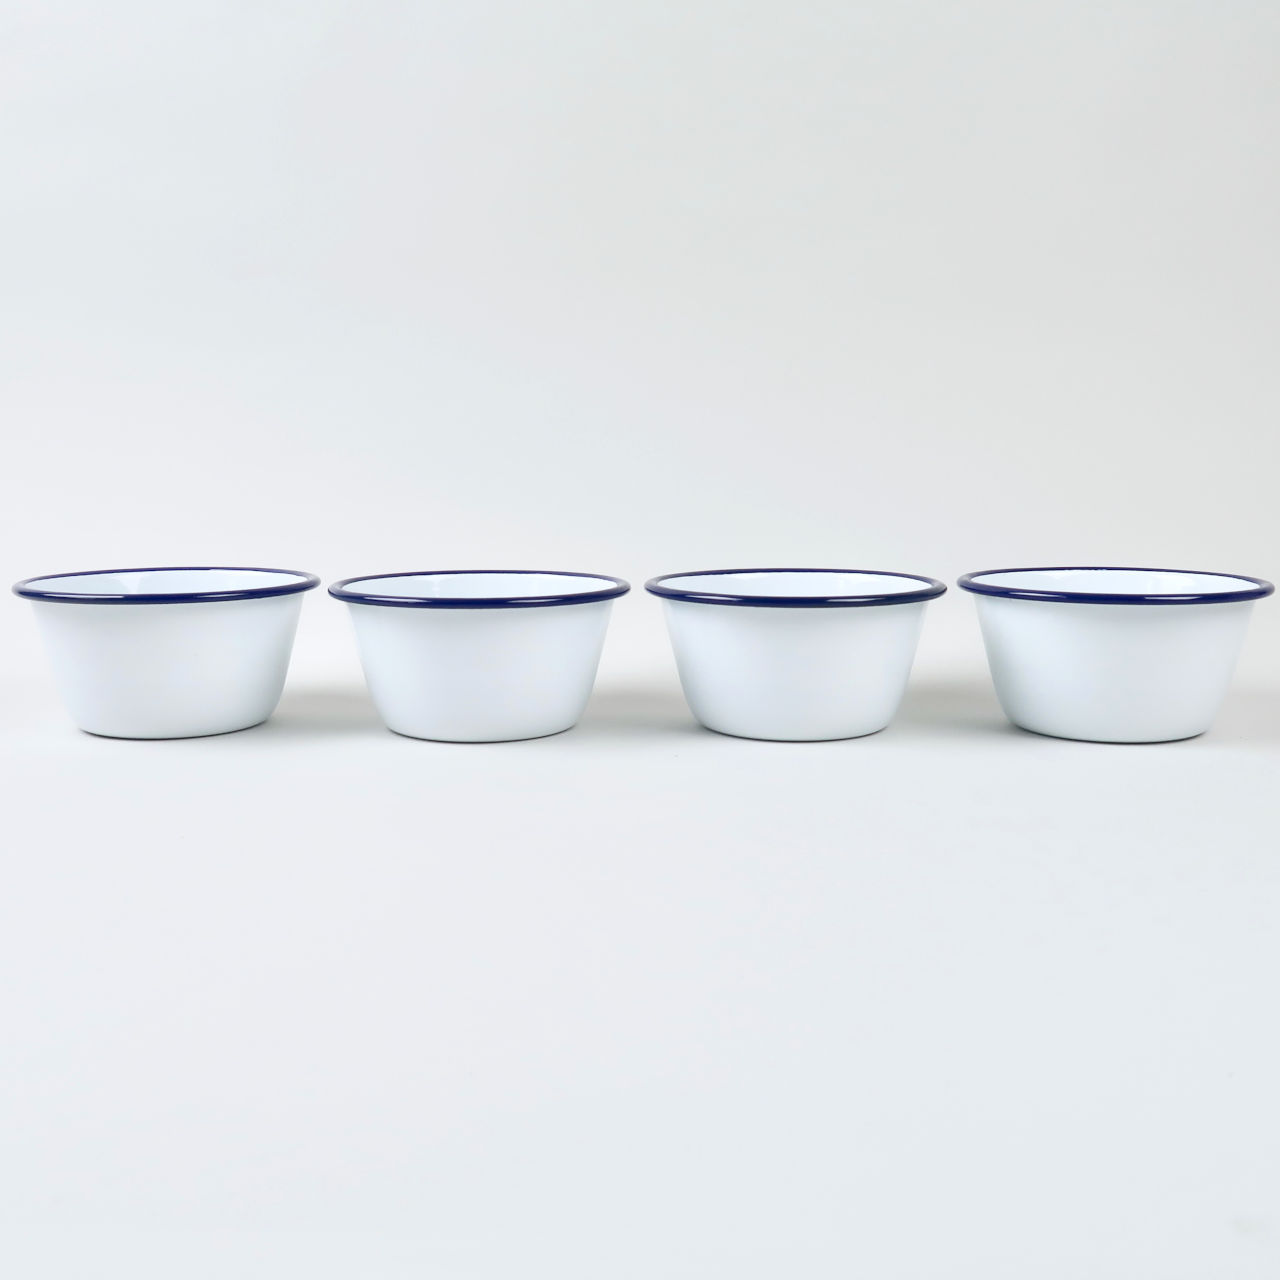 Box of 4 Small Enamel Bowls - White